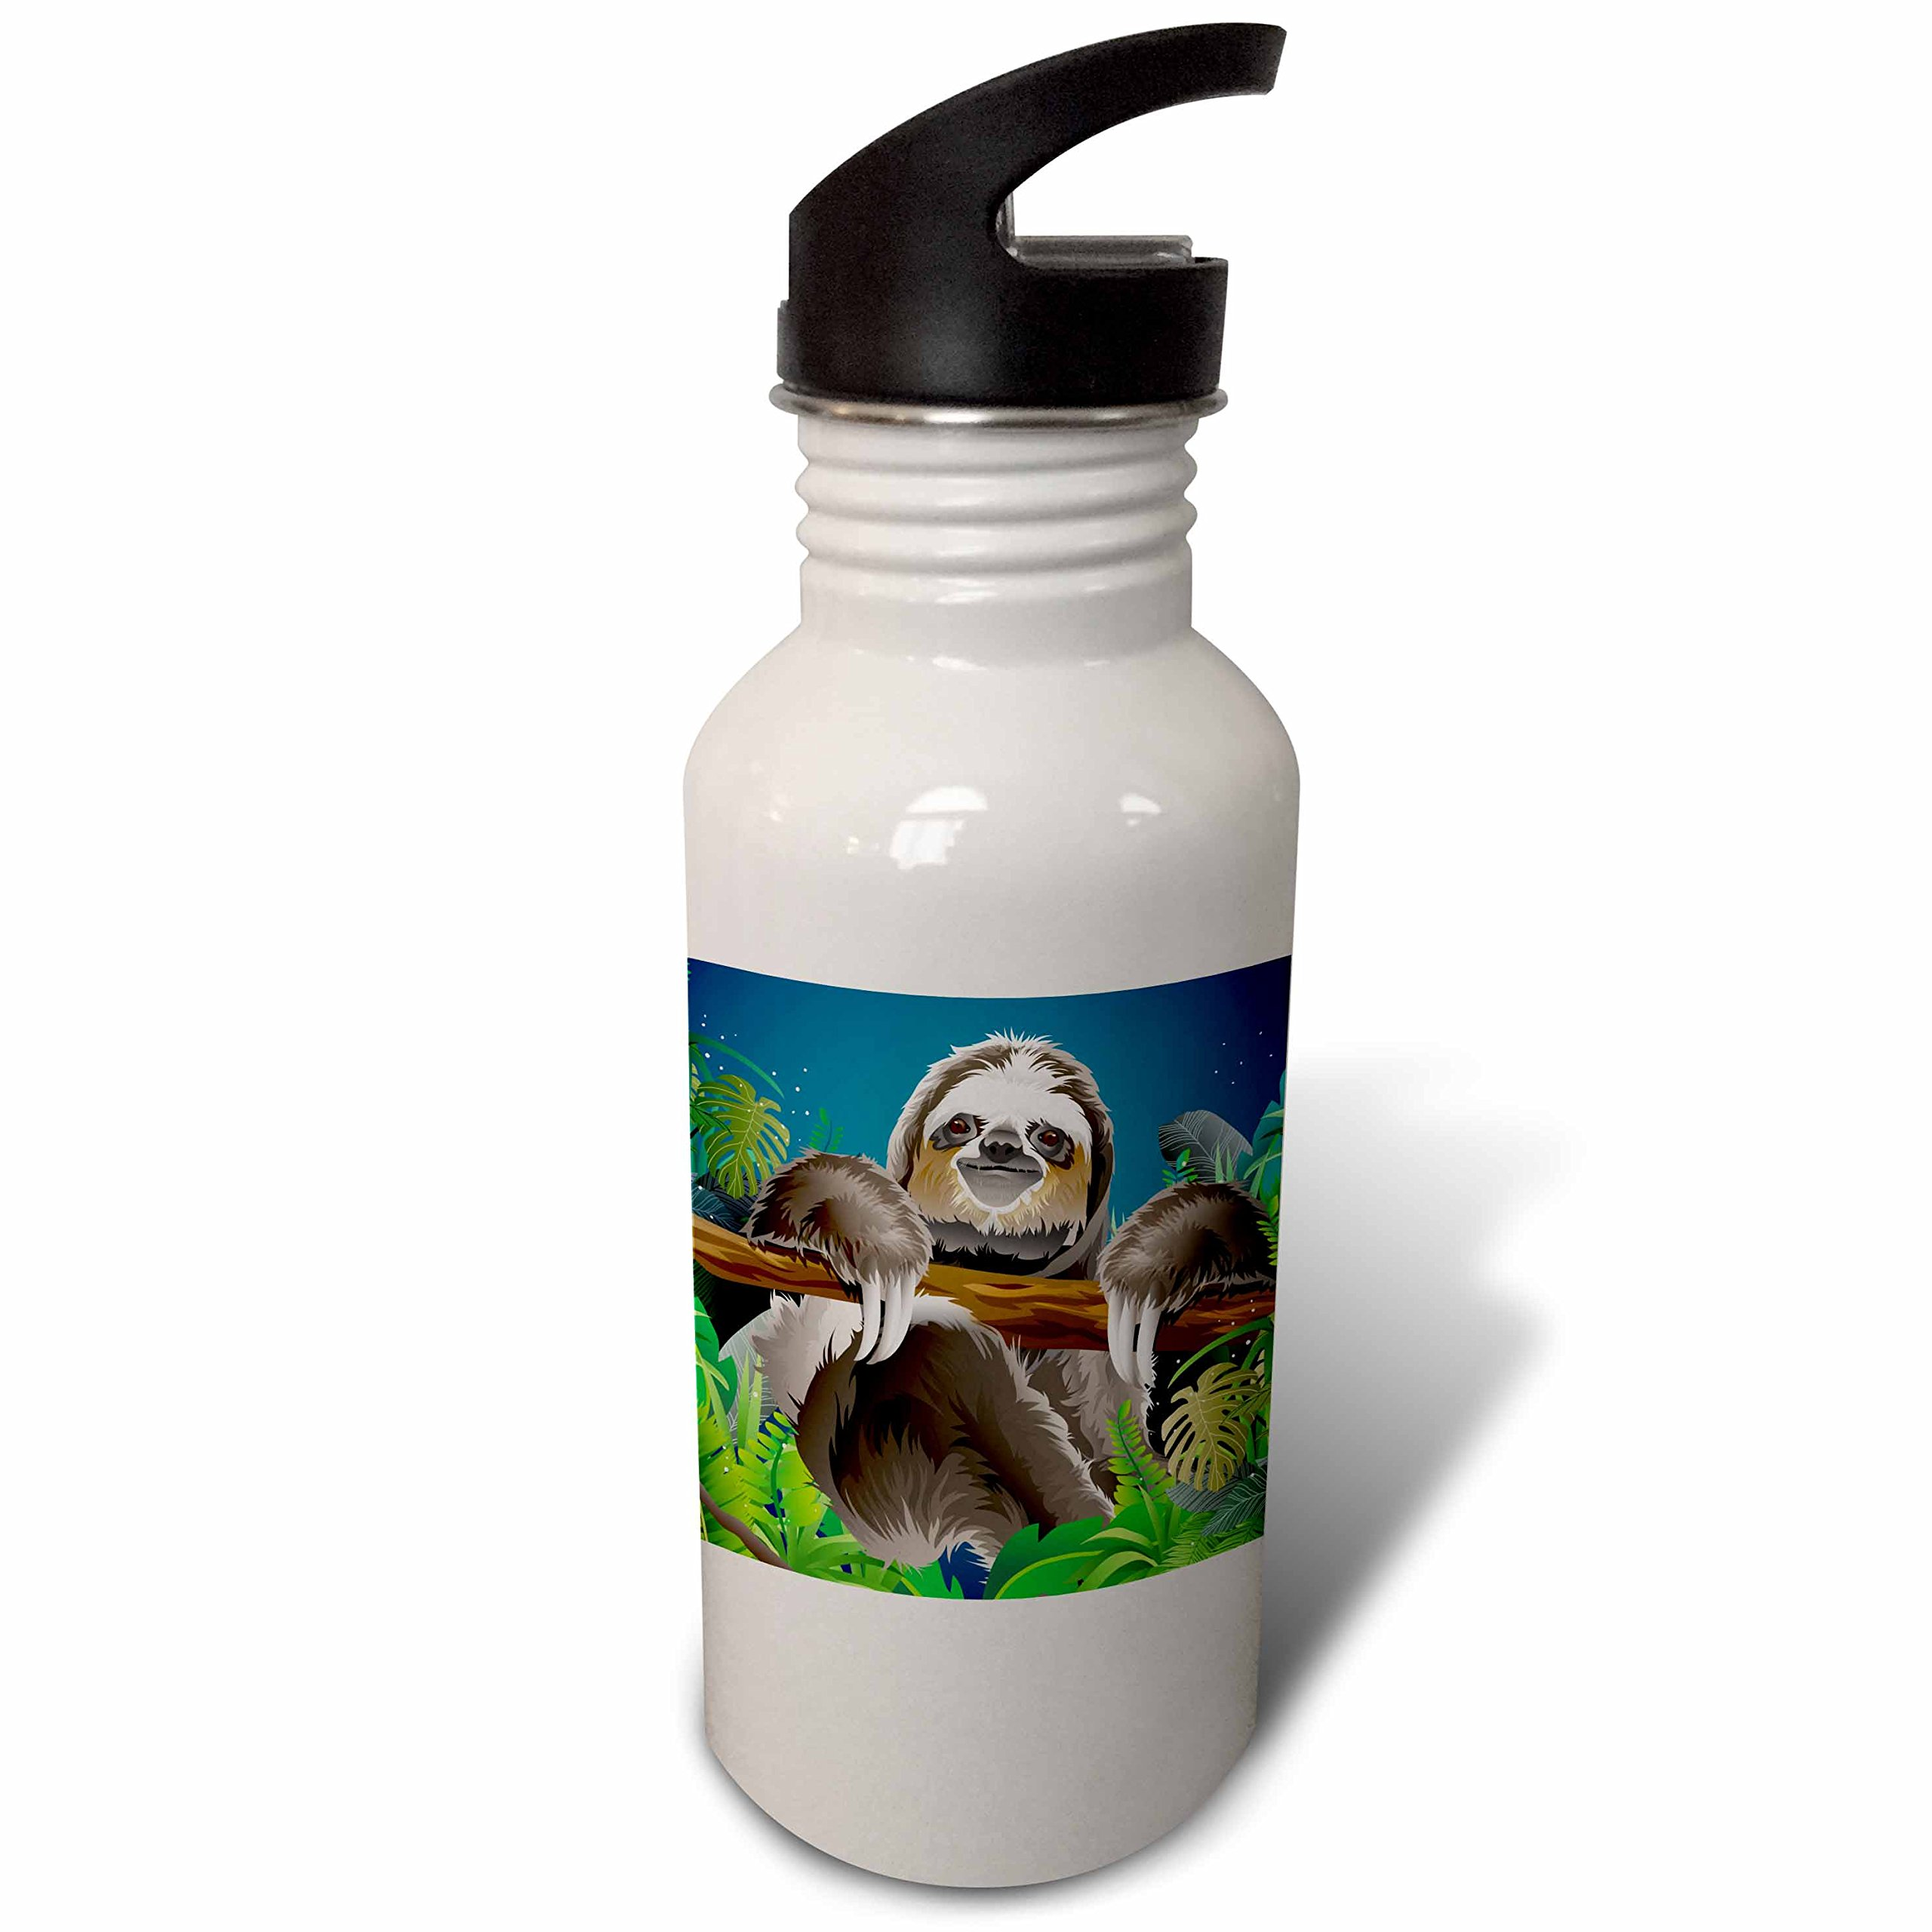 3dRose Sven Herkenrath Animal - A Cute Illustration of a Sloth Chilling on a Tree - Flip Straw 21oz Water Bottle (wb_281661_2)